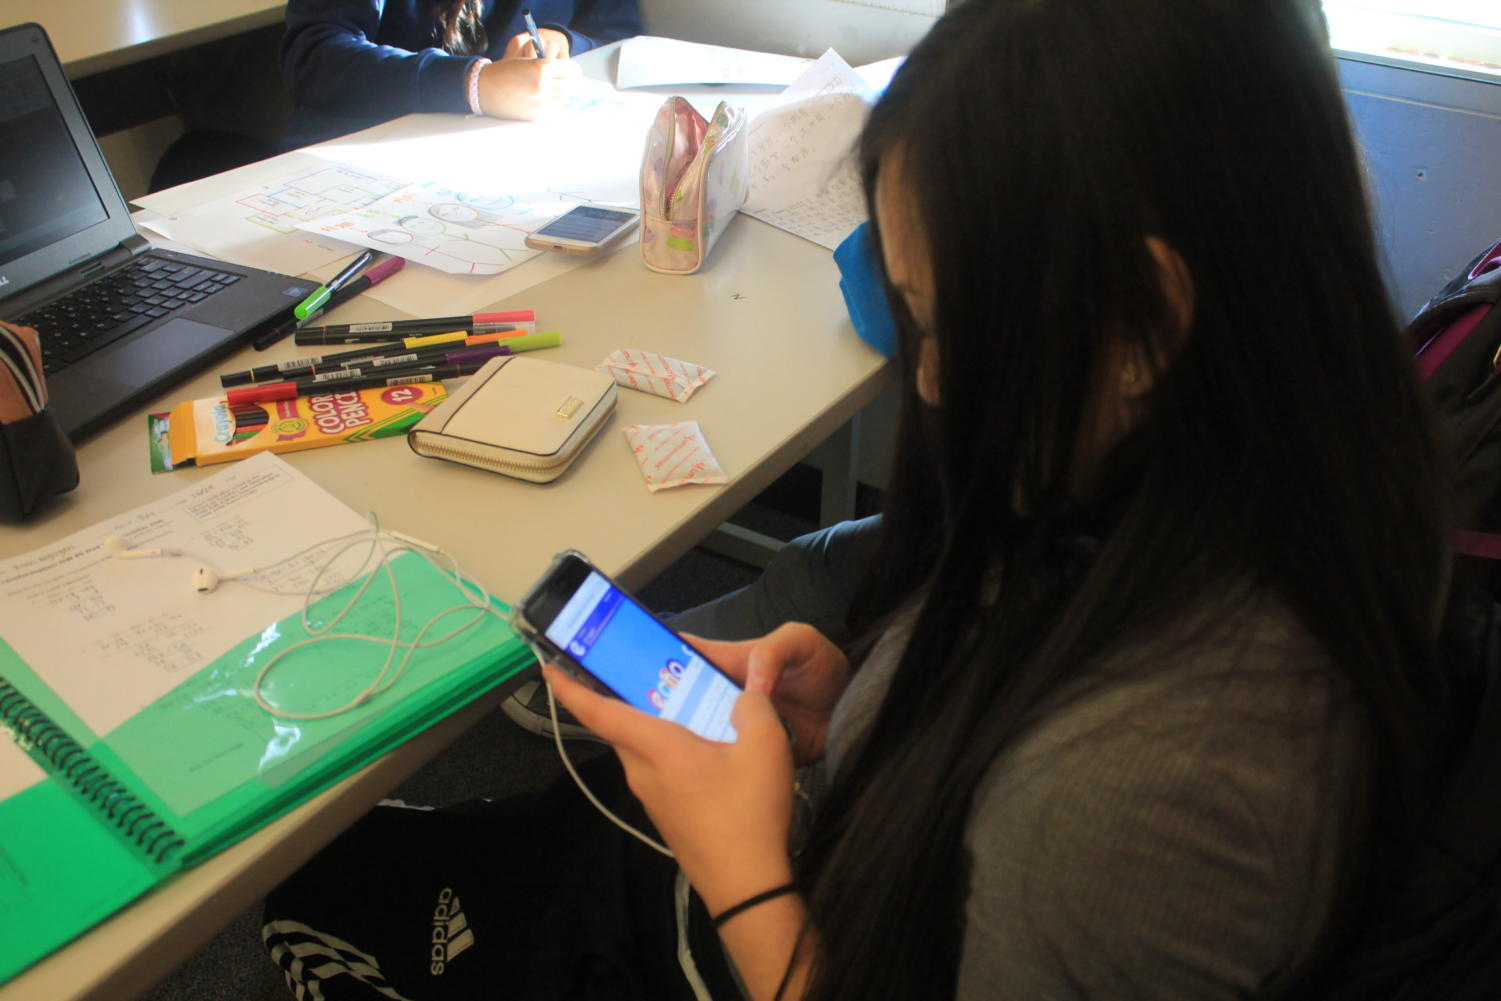 Sophomore Kim Nguyen uses her phone to check Echo during her Mandarin class on Oct. 27. Students have taken to using social media and group chats to help them prepare for class or get help with their homework.